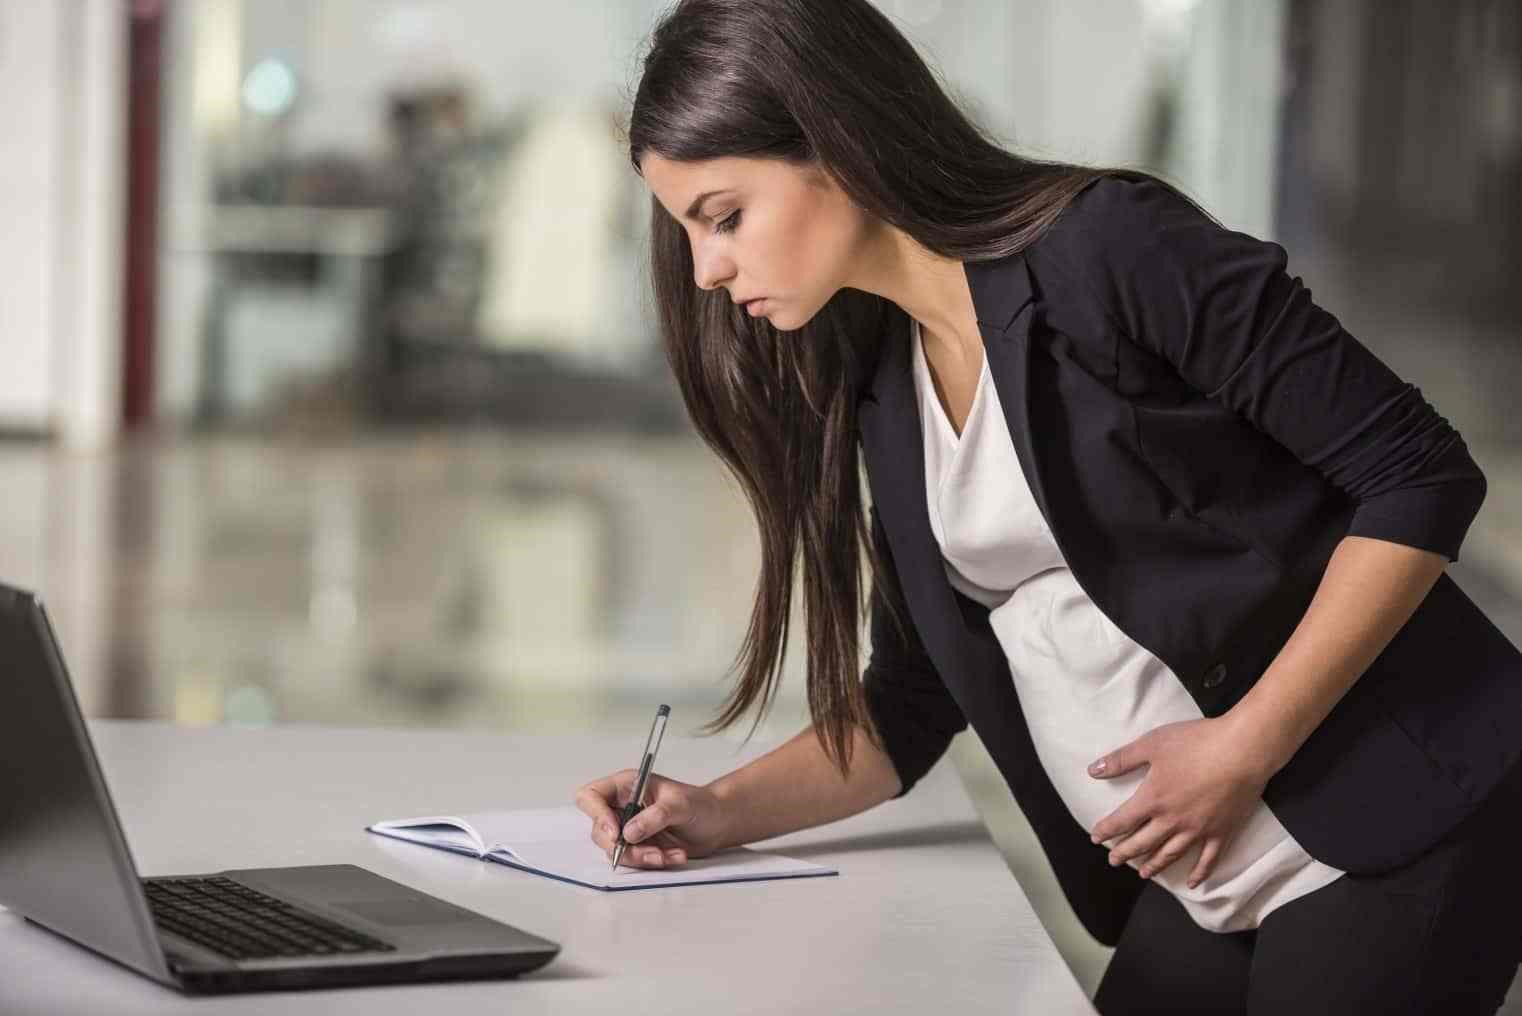 """The Reality of Maternity Leave on Women's Careers"" by Rita Kakati Shah at Uma"